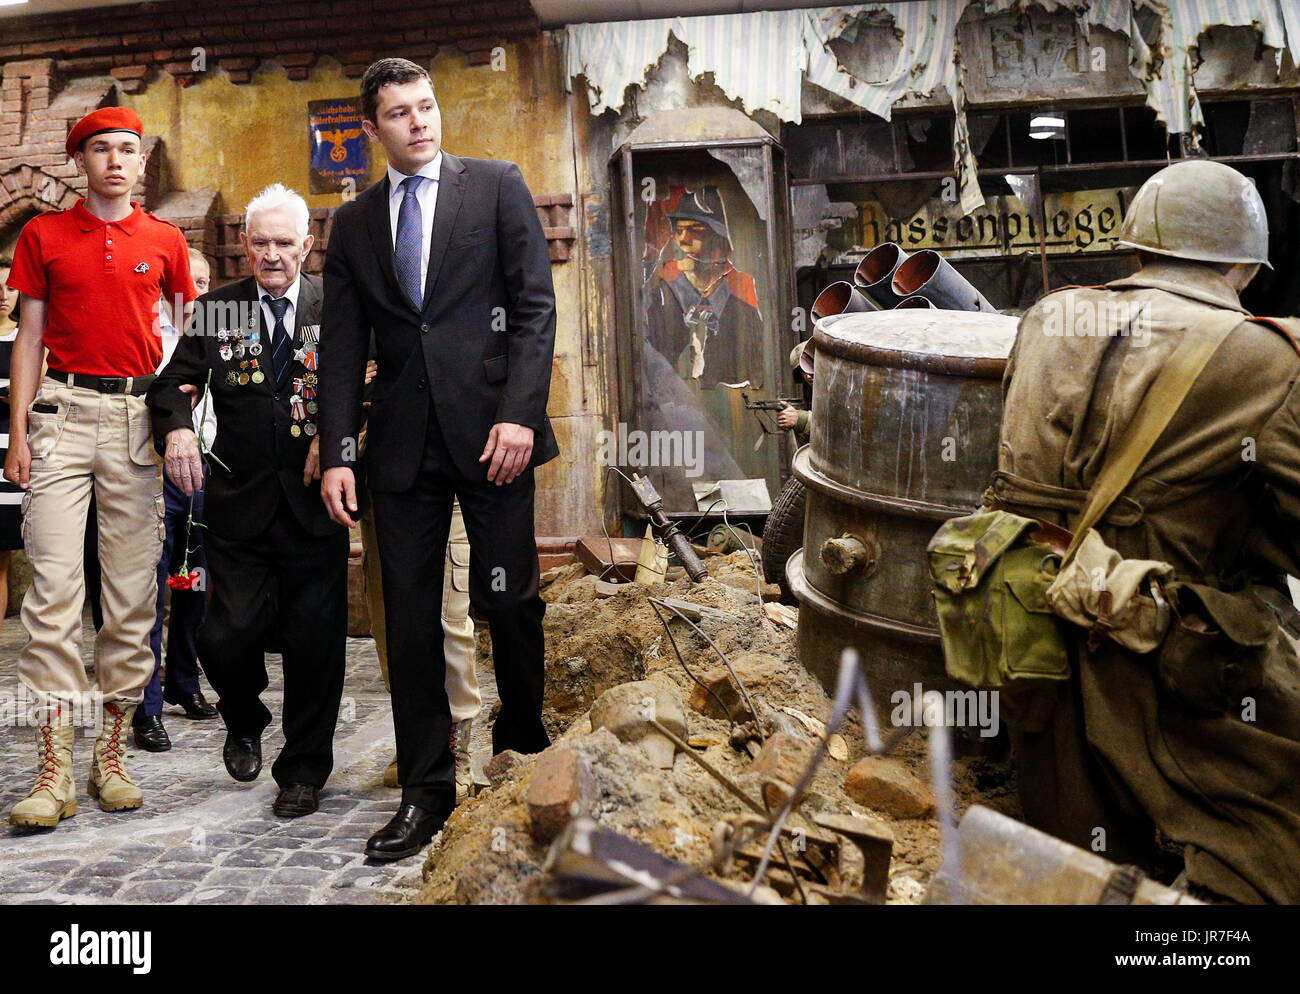 Kaliningrad Region, Russia. 3rd Aug, 2017. War veteran Ivan Tikhonov (2nd L) who took part in the final assault on Konigsberg in 1945, and the acting governor of Kaliningrad Region, Anton Alikhanov (R), view a 3-dimensional panoramic exhibition titled 'Konigsberg 1945: the Final Assault' at the Kaliningrad Region Museum of History and Arts; the 360-degree display, which depicts the April 1945 assault by the Red Army on the city of Konigsberg in WWII, is an artwork by the Nevsky Batalist team led by Dmitry Poshtarenko. Credit: Vitaly Nevar/TASS/Alamy Live News - Stock Image